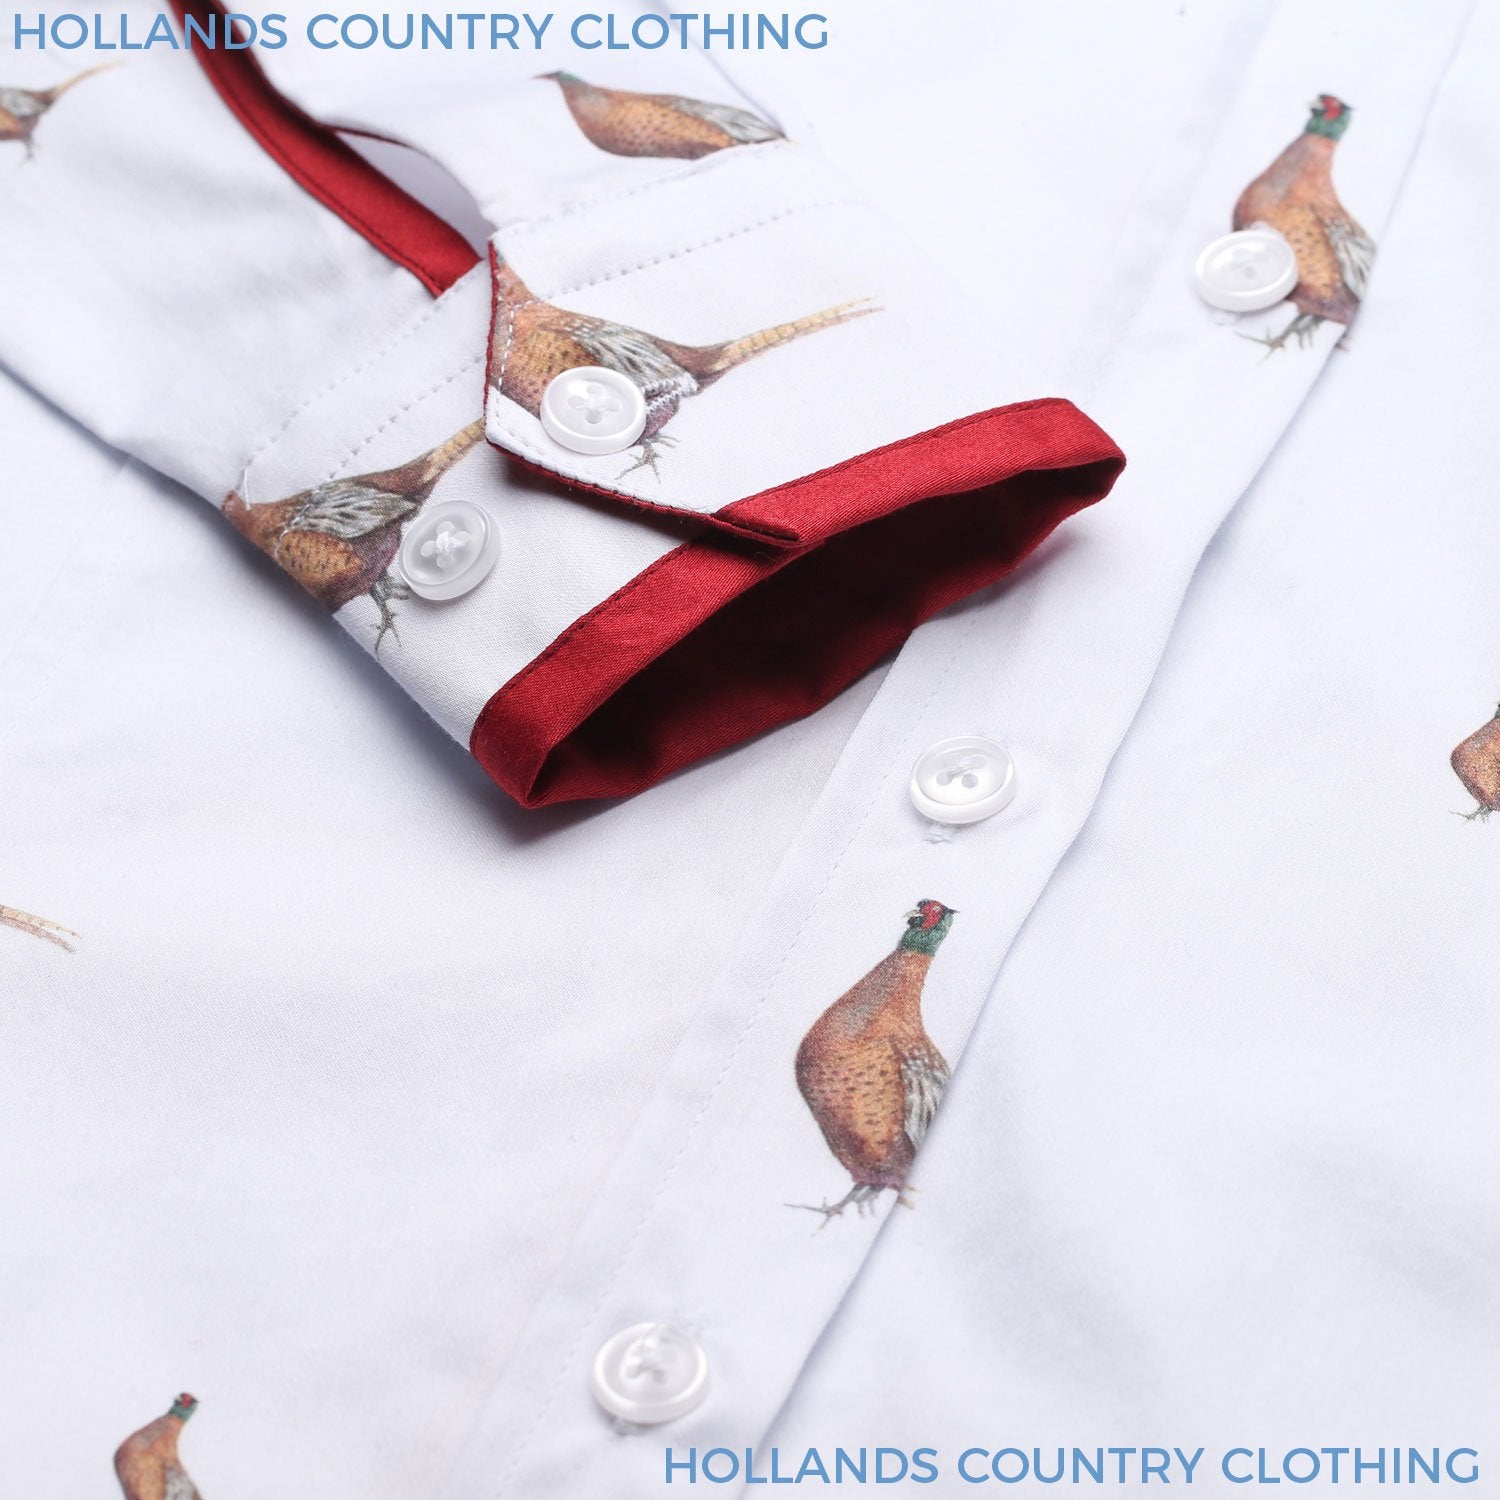 White Cotton shirt with pheasant design print and red cuff trim